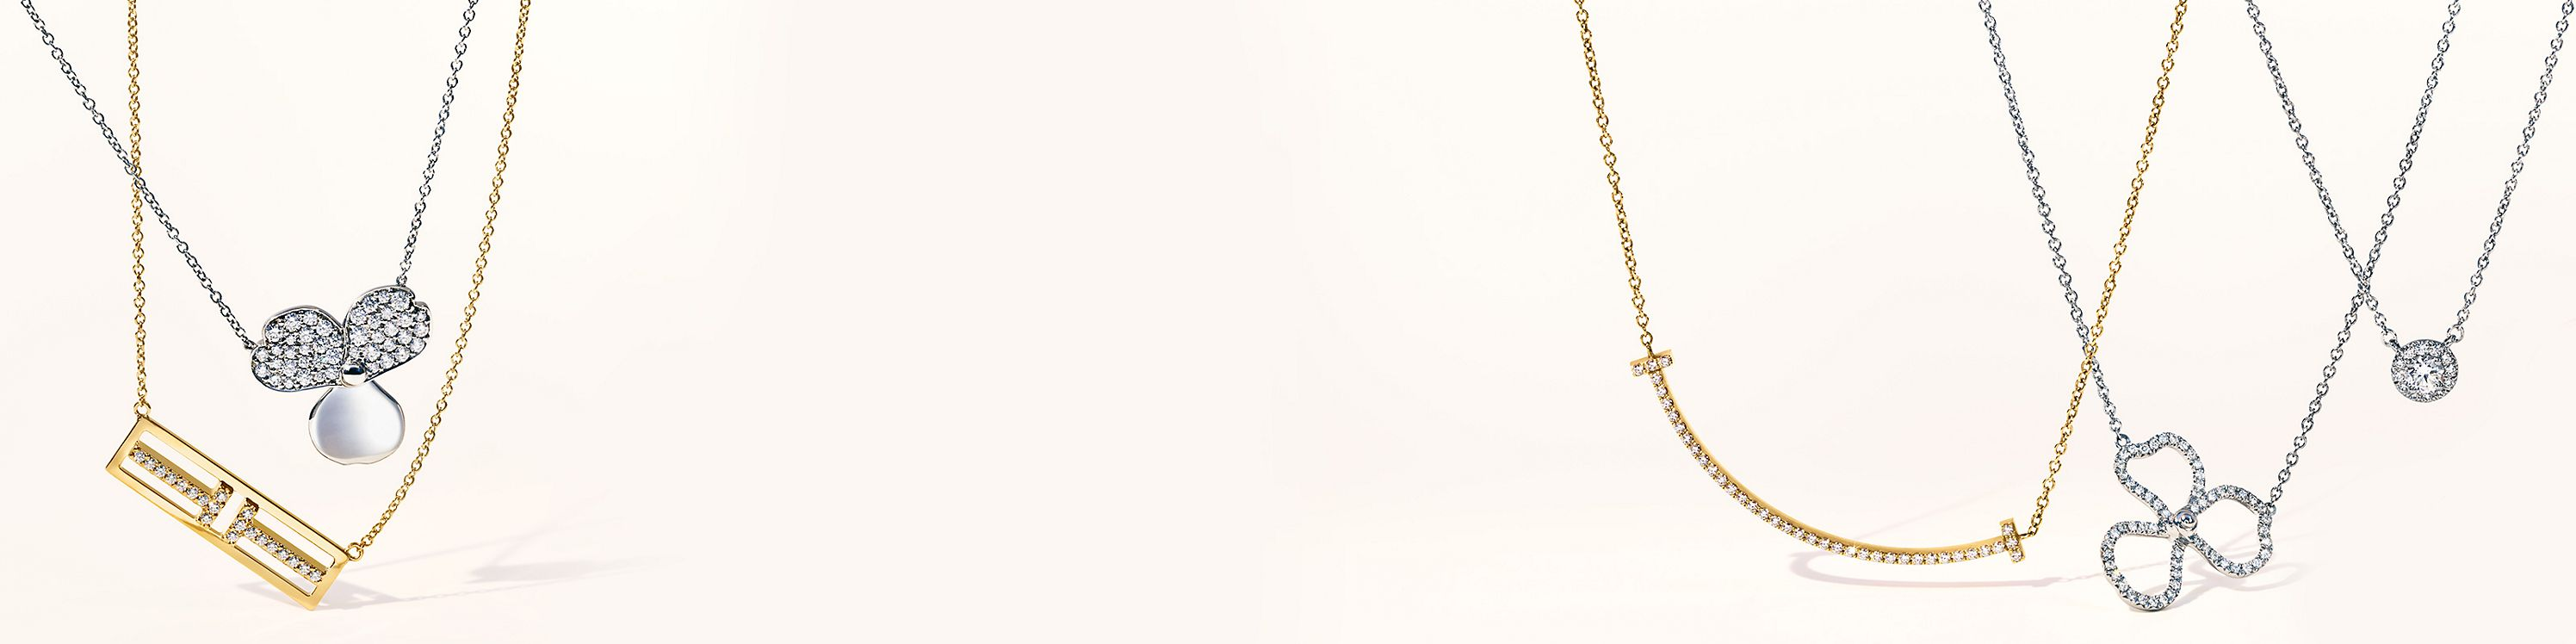 735f933f3efdd Necklaces & Pendants | Tiffany & Co.